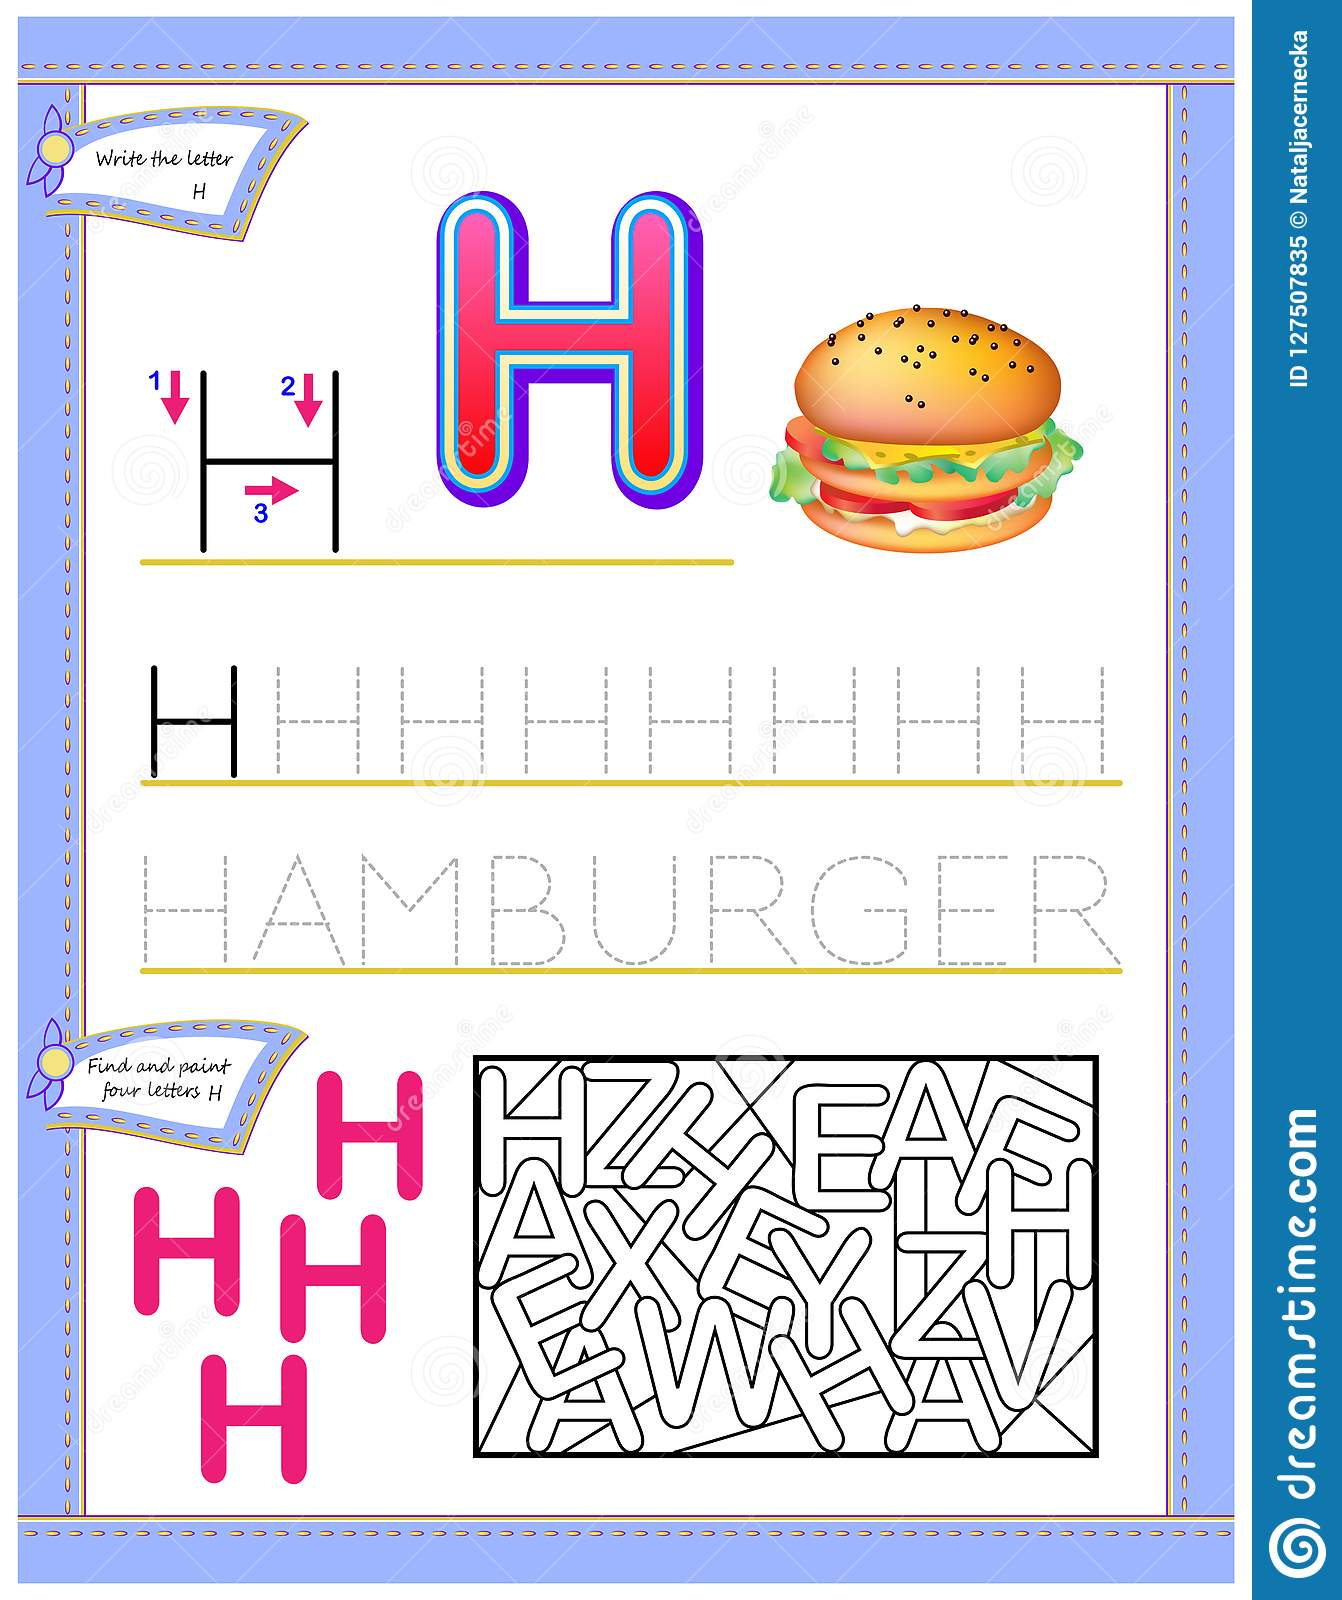 Worksheet For Kids With Letter H For Study English